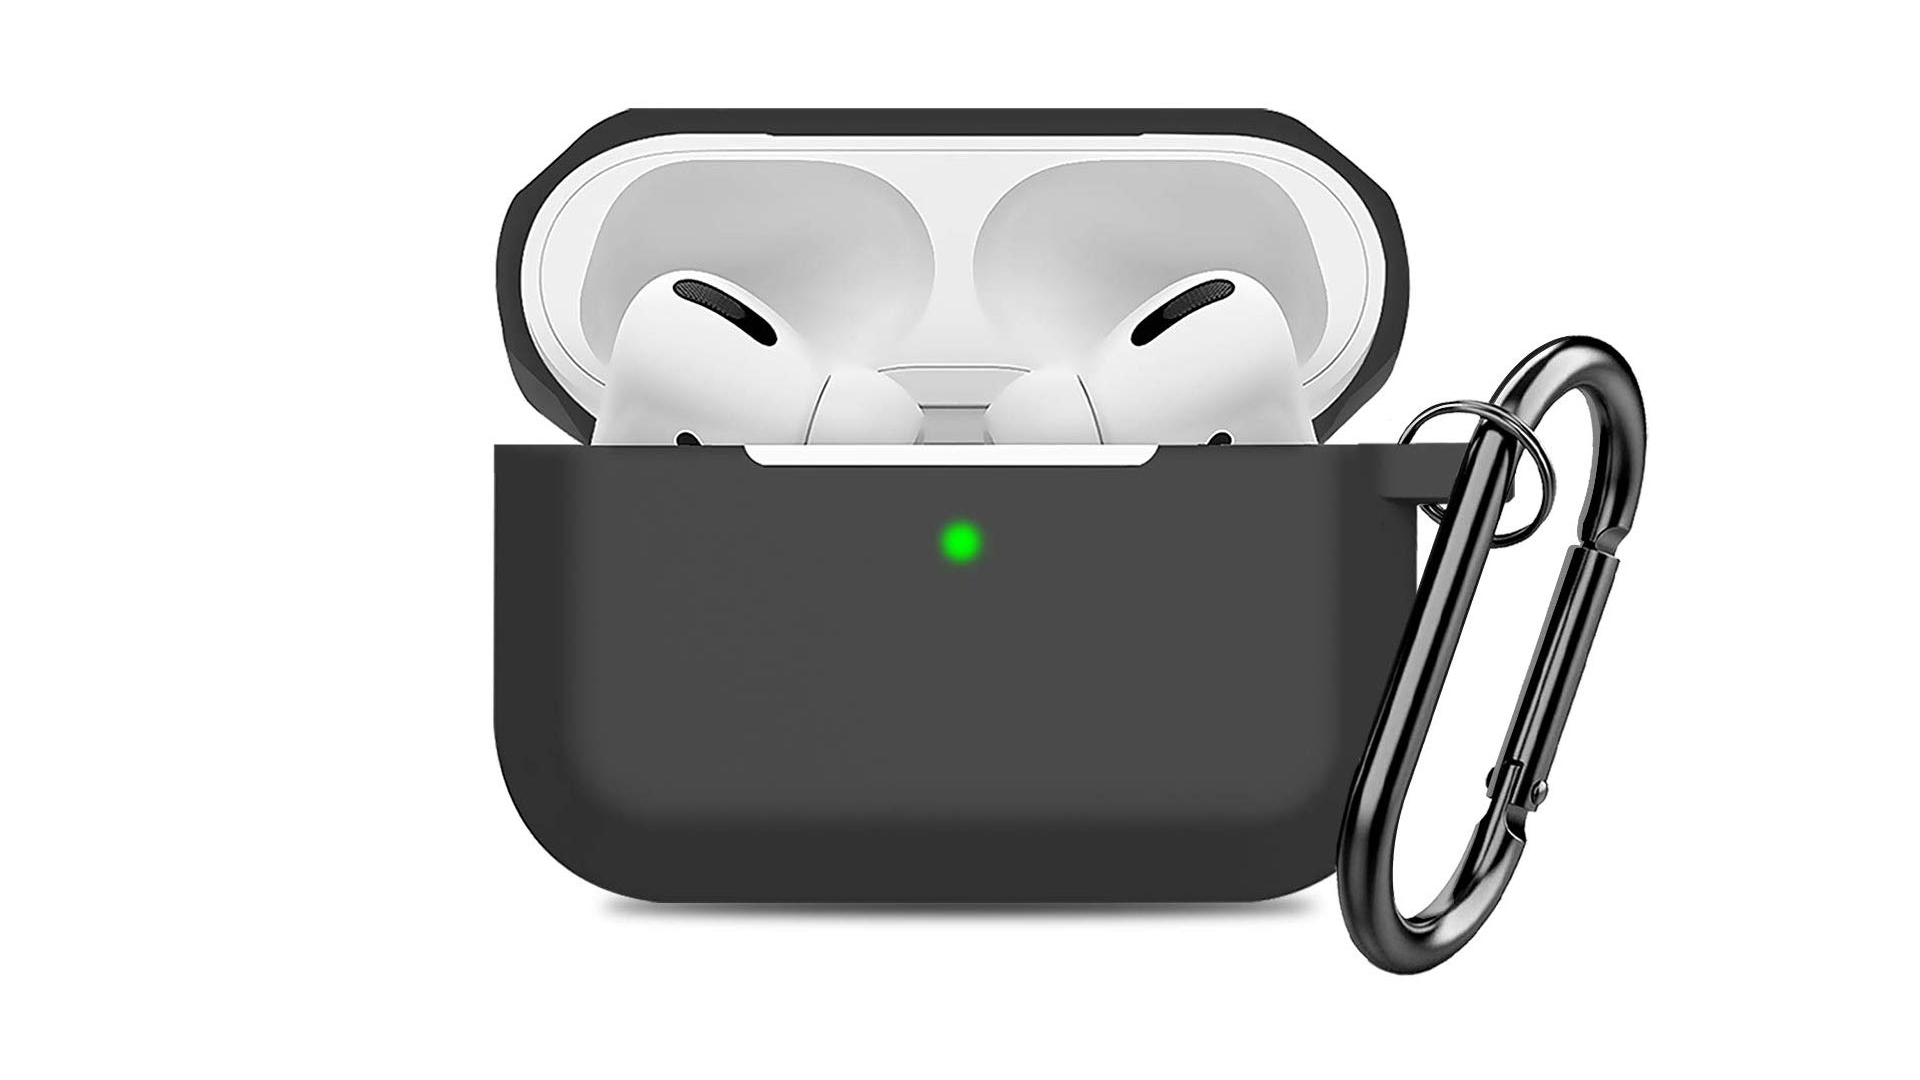 The Doboli silicone Airpods Pro case